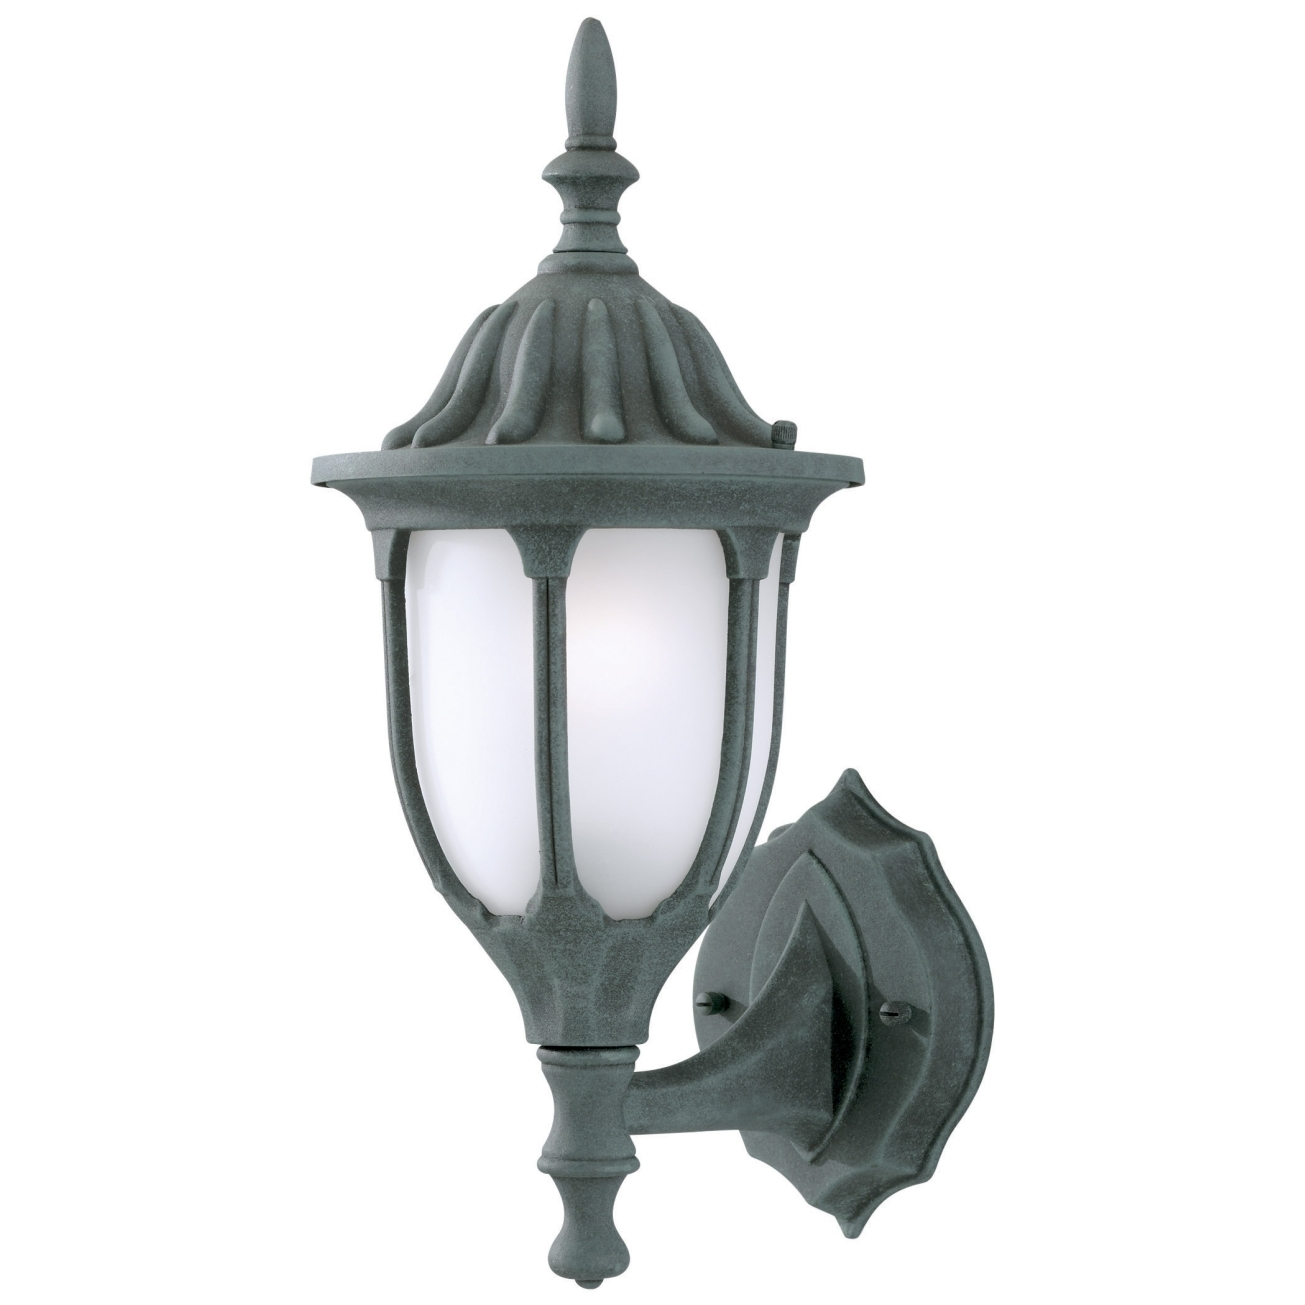 Exterior Light Fixtures & Outdoor Wall Lighting At Ace Hardware With Regard To Plastic Outdoor Wall Light Fixtures (View 8 of 15)